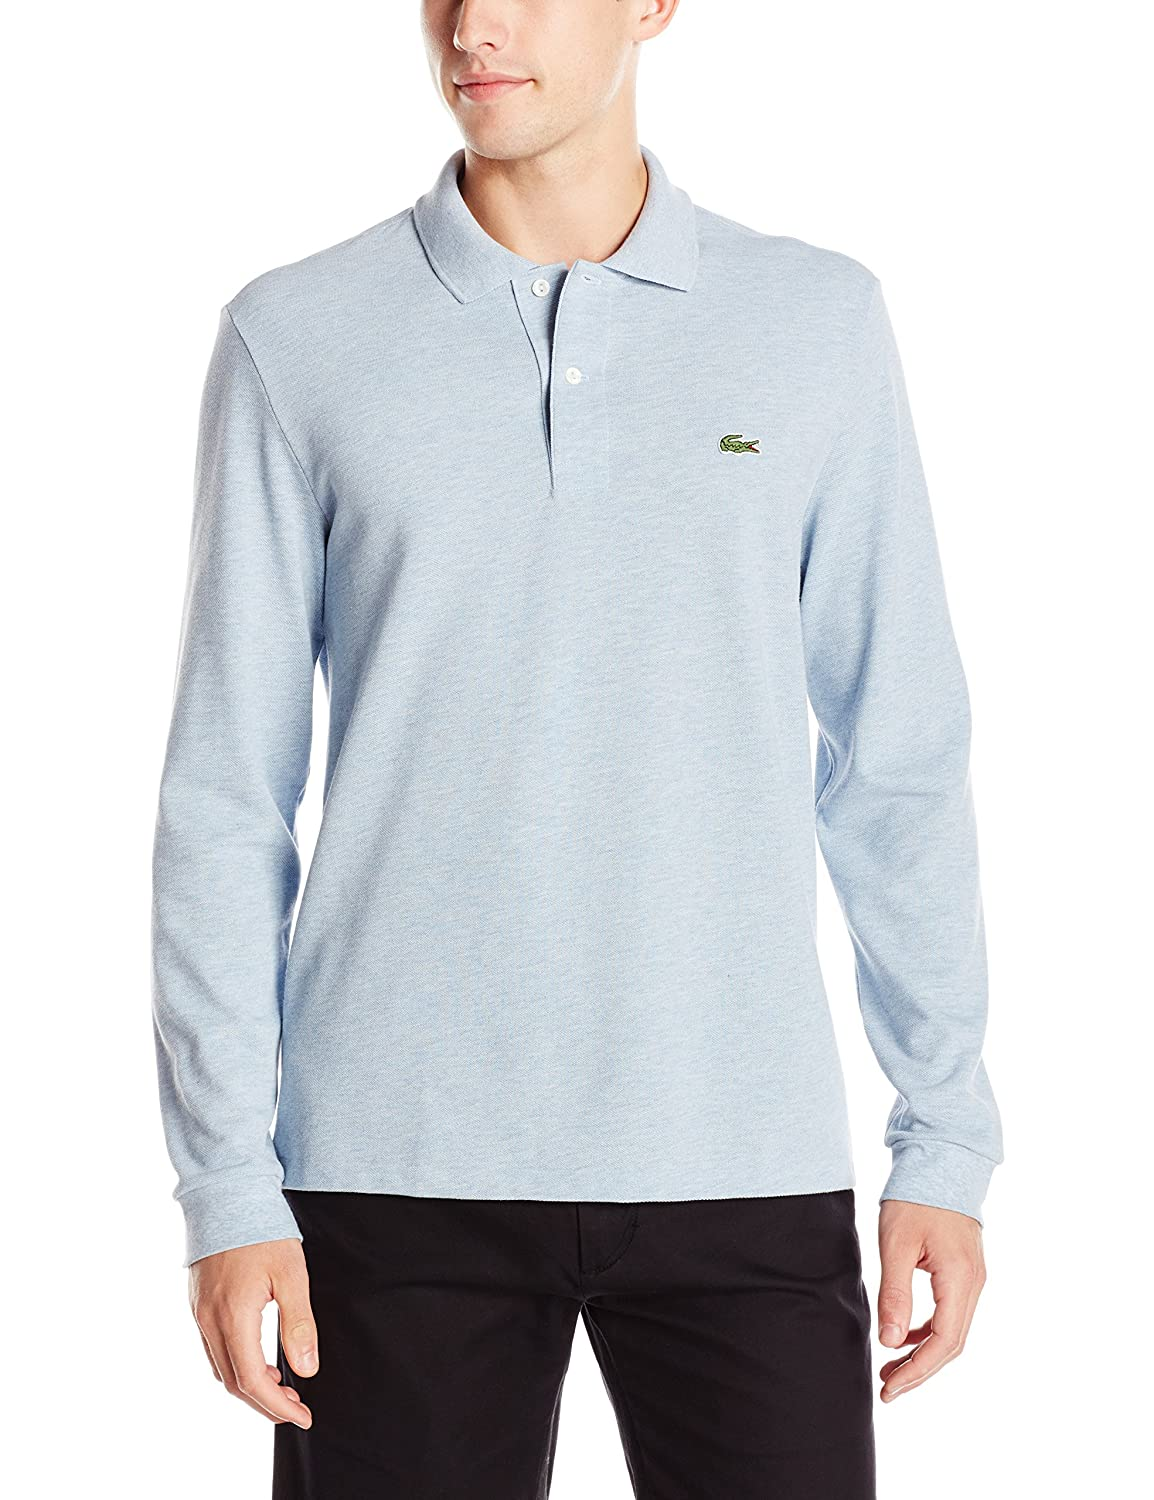 Lacoste Mens Long Sleeve Chine Classic Pique L.12.12 Original Fit Polo Shirt